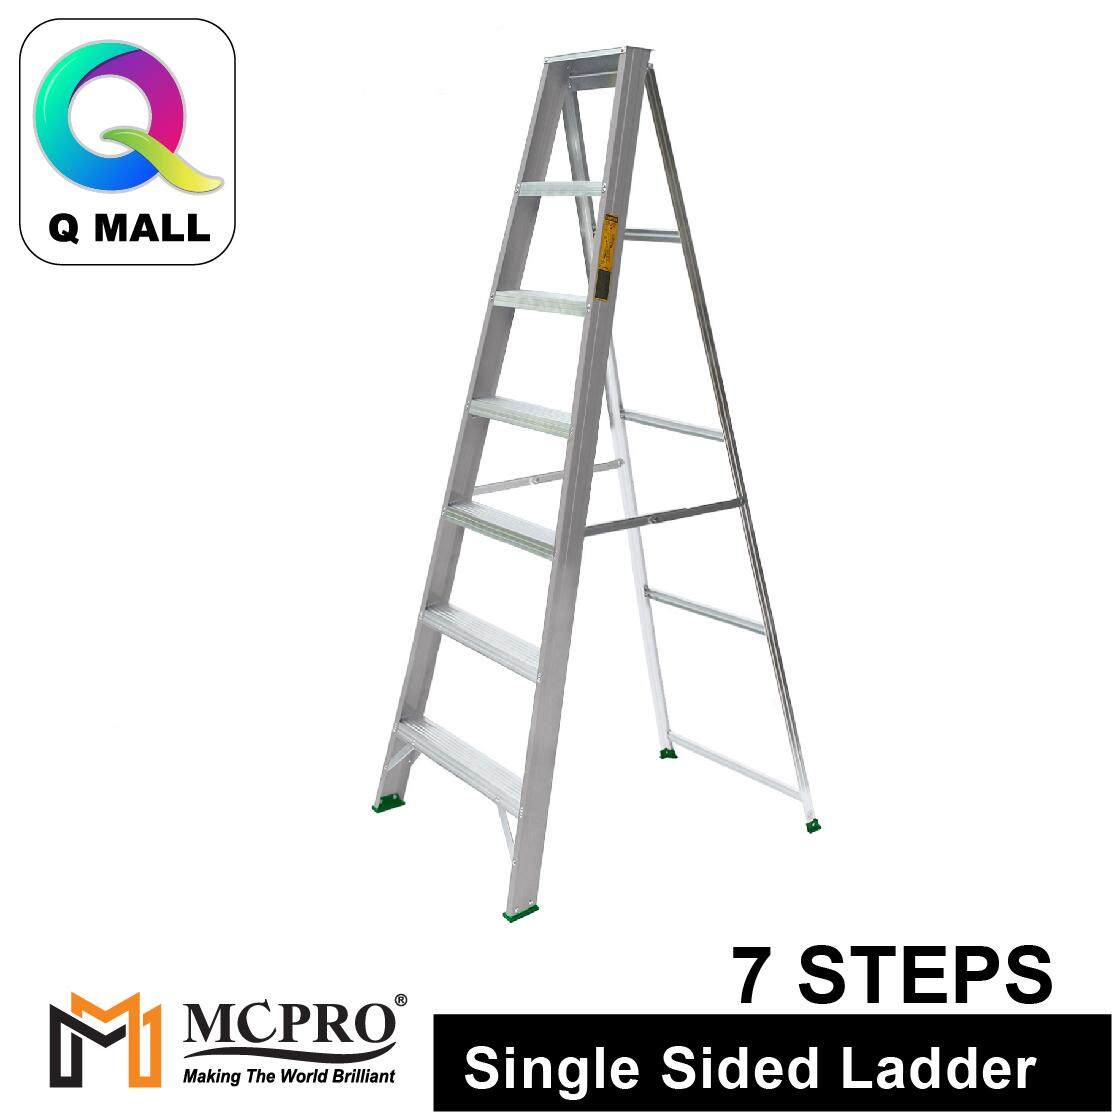 MCPRO Aluminium Single Sided Ladder 7 Steps 70 [ Max Reachable Height 311.4cm ]